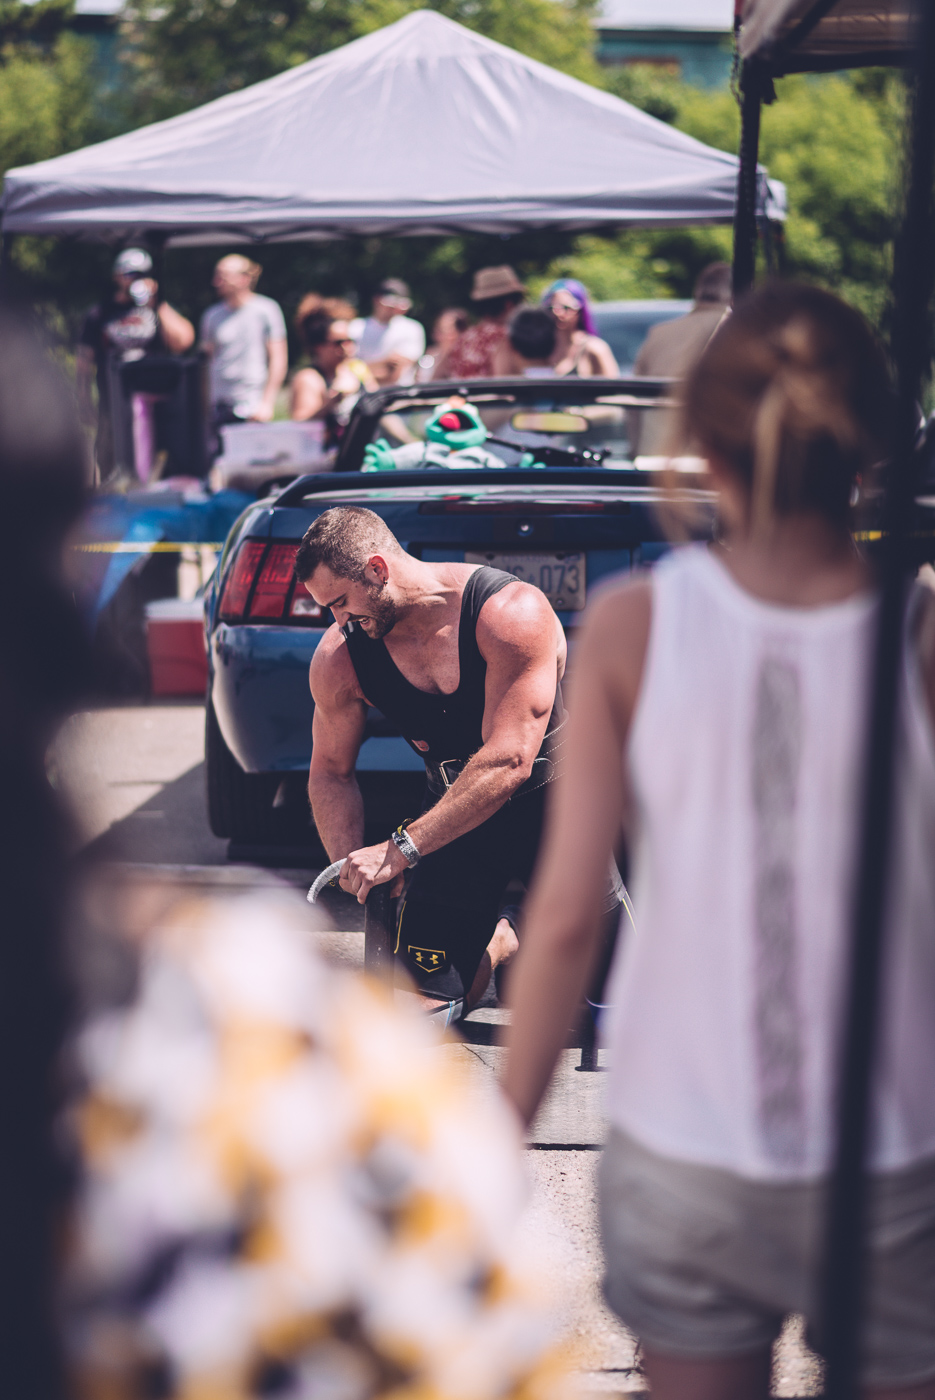 strongman_2016_blog12.jpg